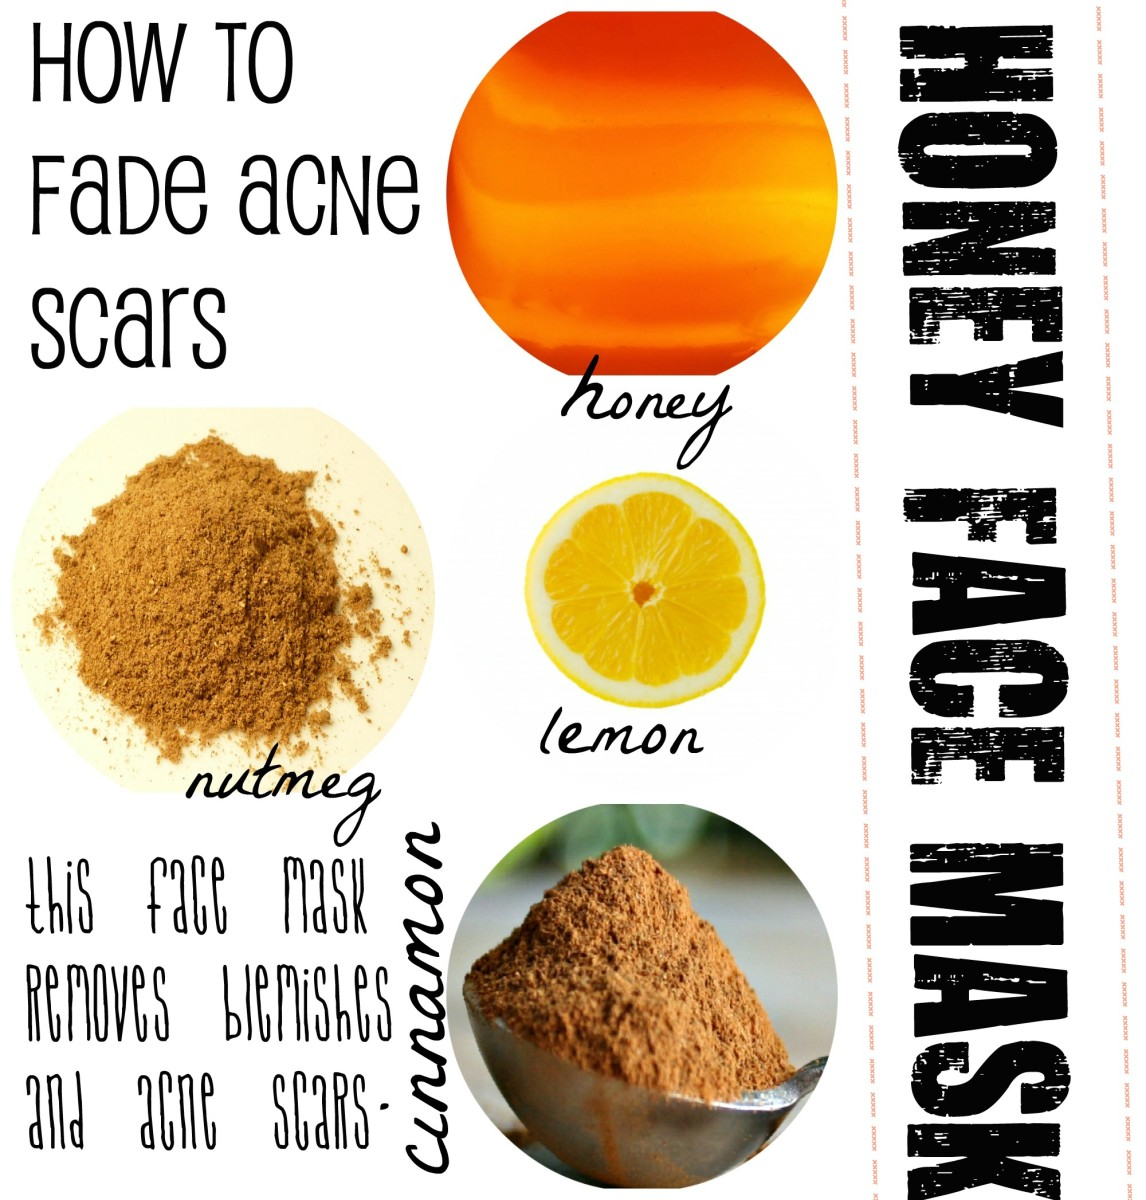 Homemade honey face mask recipes for beautiful skin bellatory honey face masks can help you fade acne scars and even out skin discolouration giving solutioingenieria Images